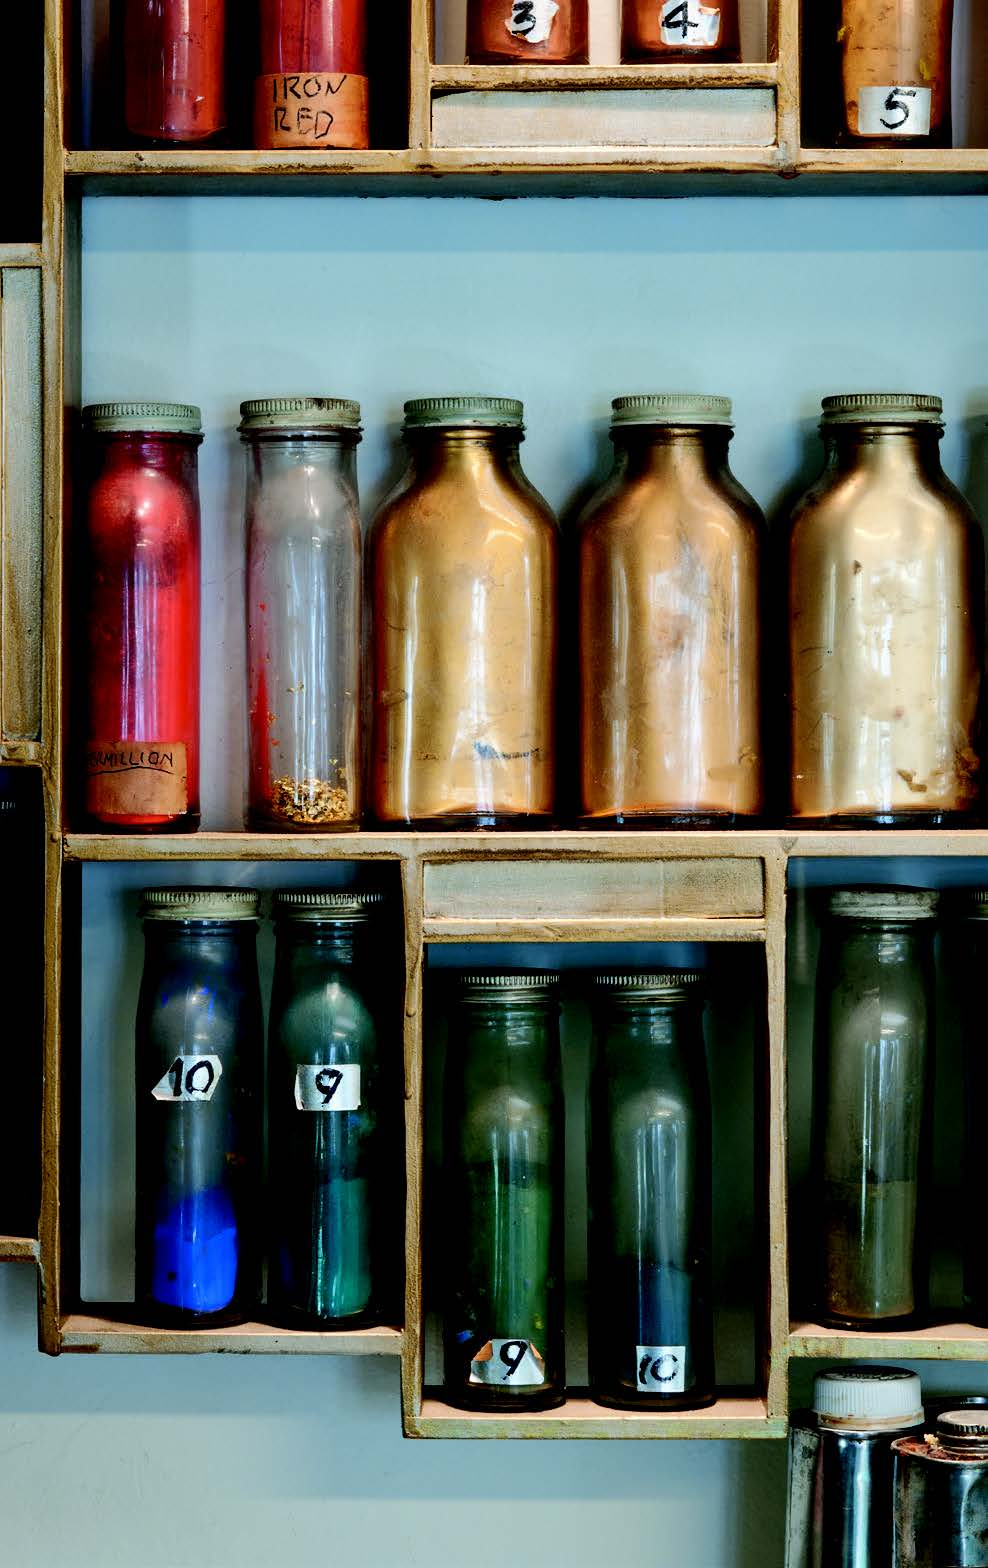 Some of Baumann's colorful pigments, neatly stored in pharmaceutical bottles. All objects Collection of the Press at the Palace of the Governors, New Mexico History Museum. Photographs by Blair Clark.